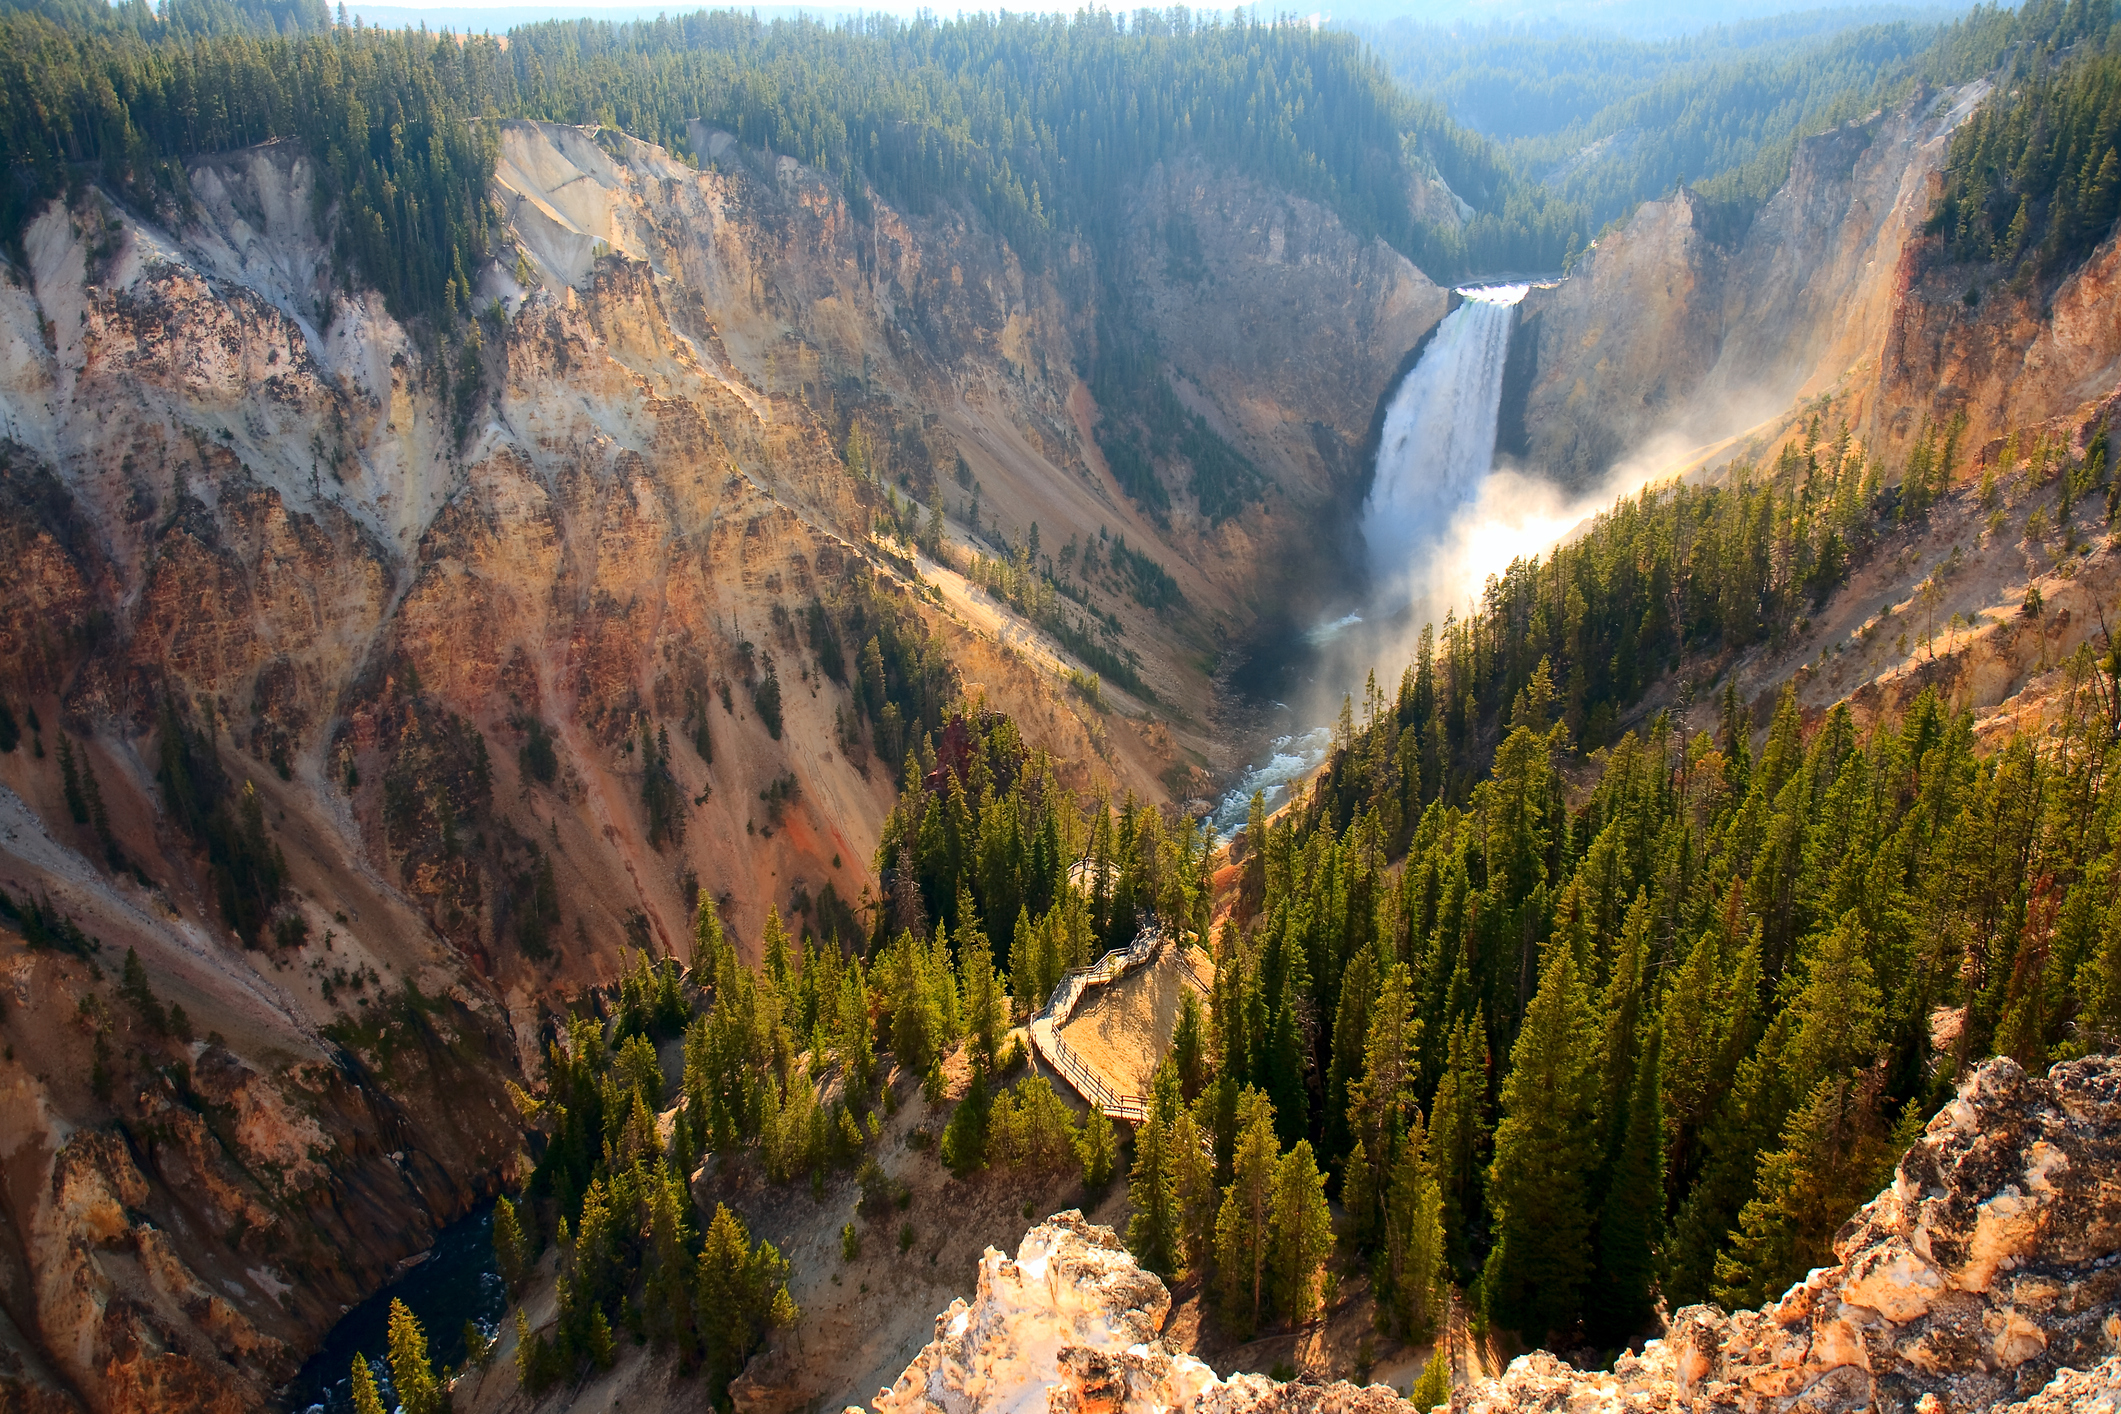 Lower Falls in Yellowstone's Grand Canyon.